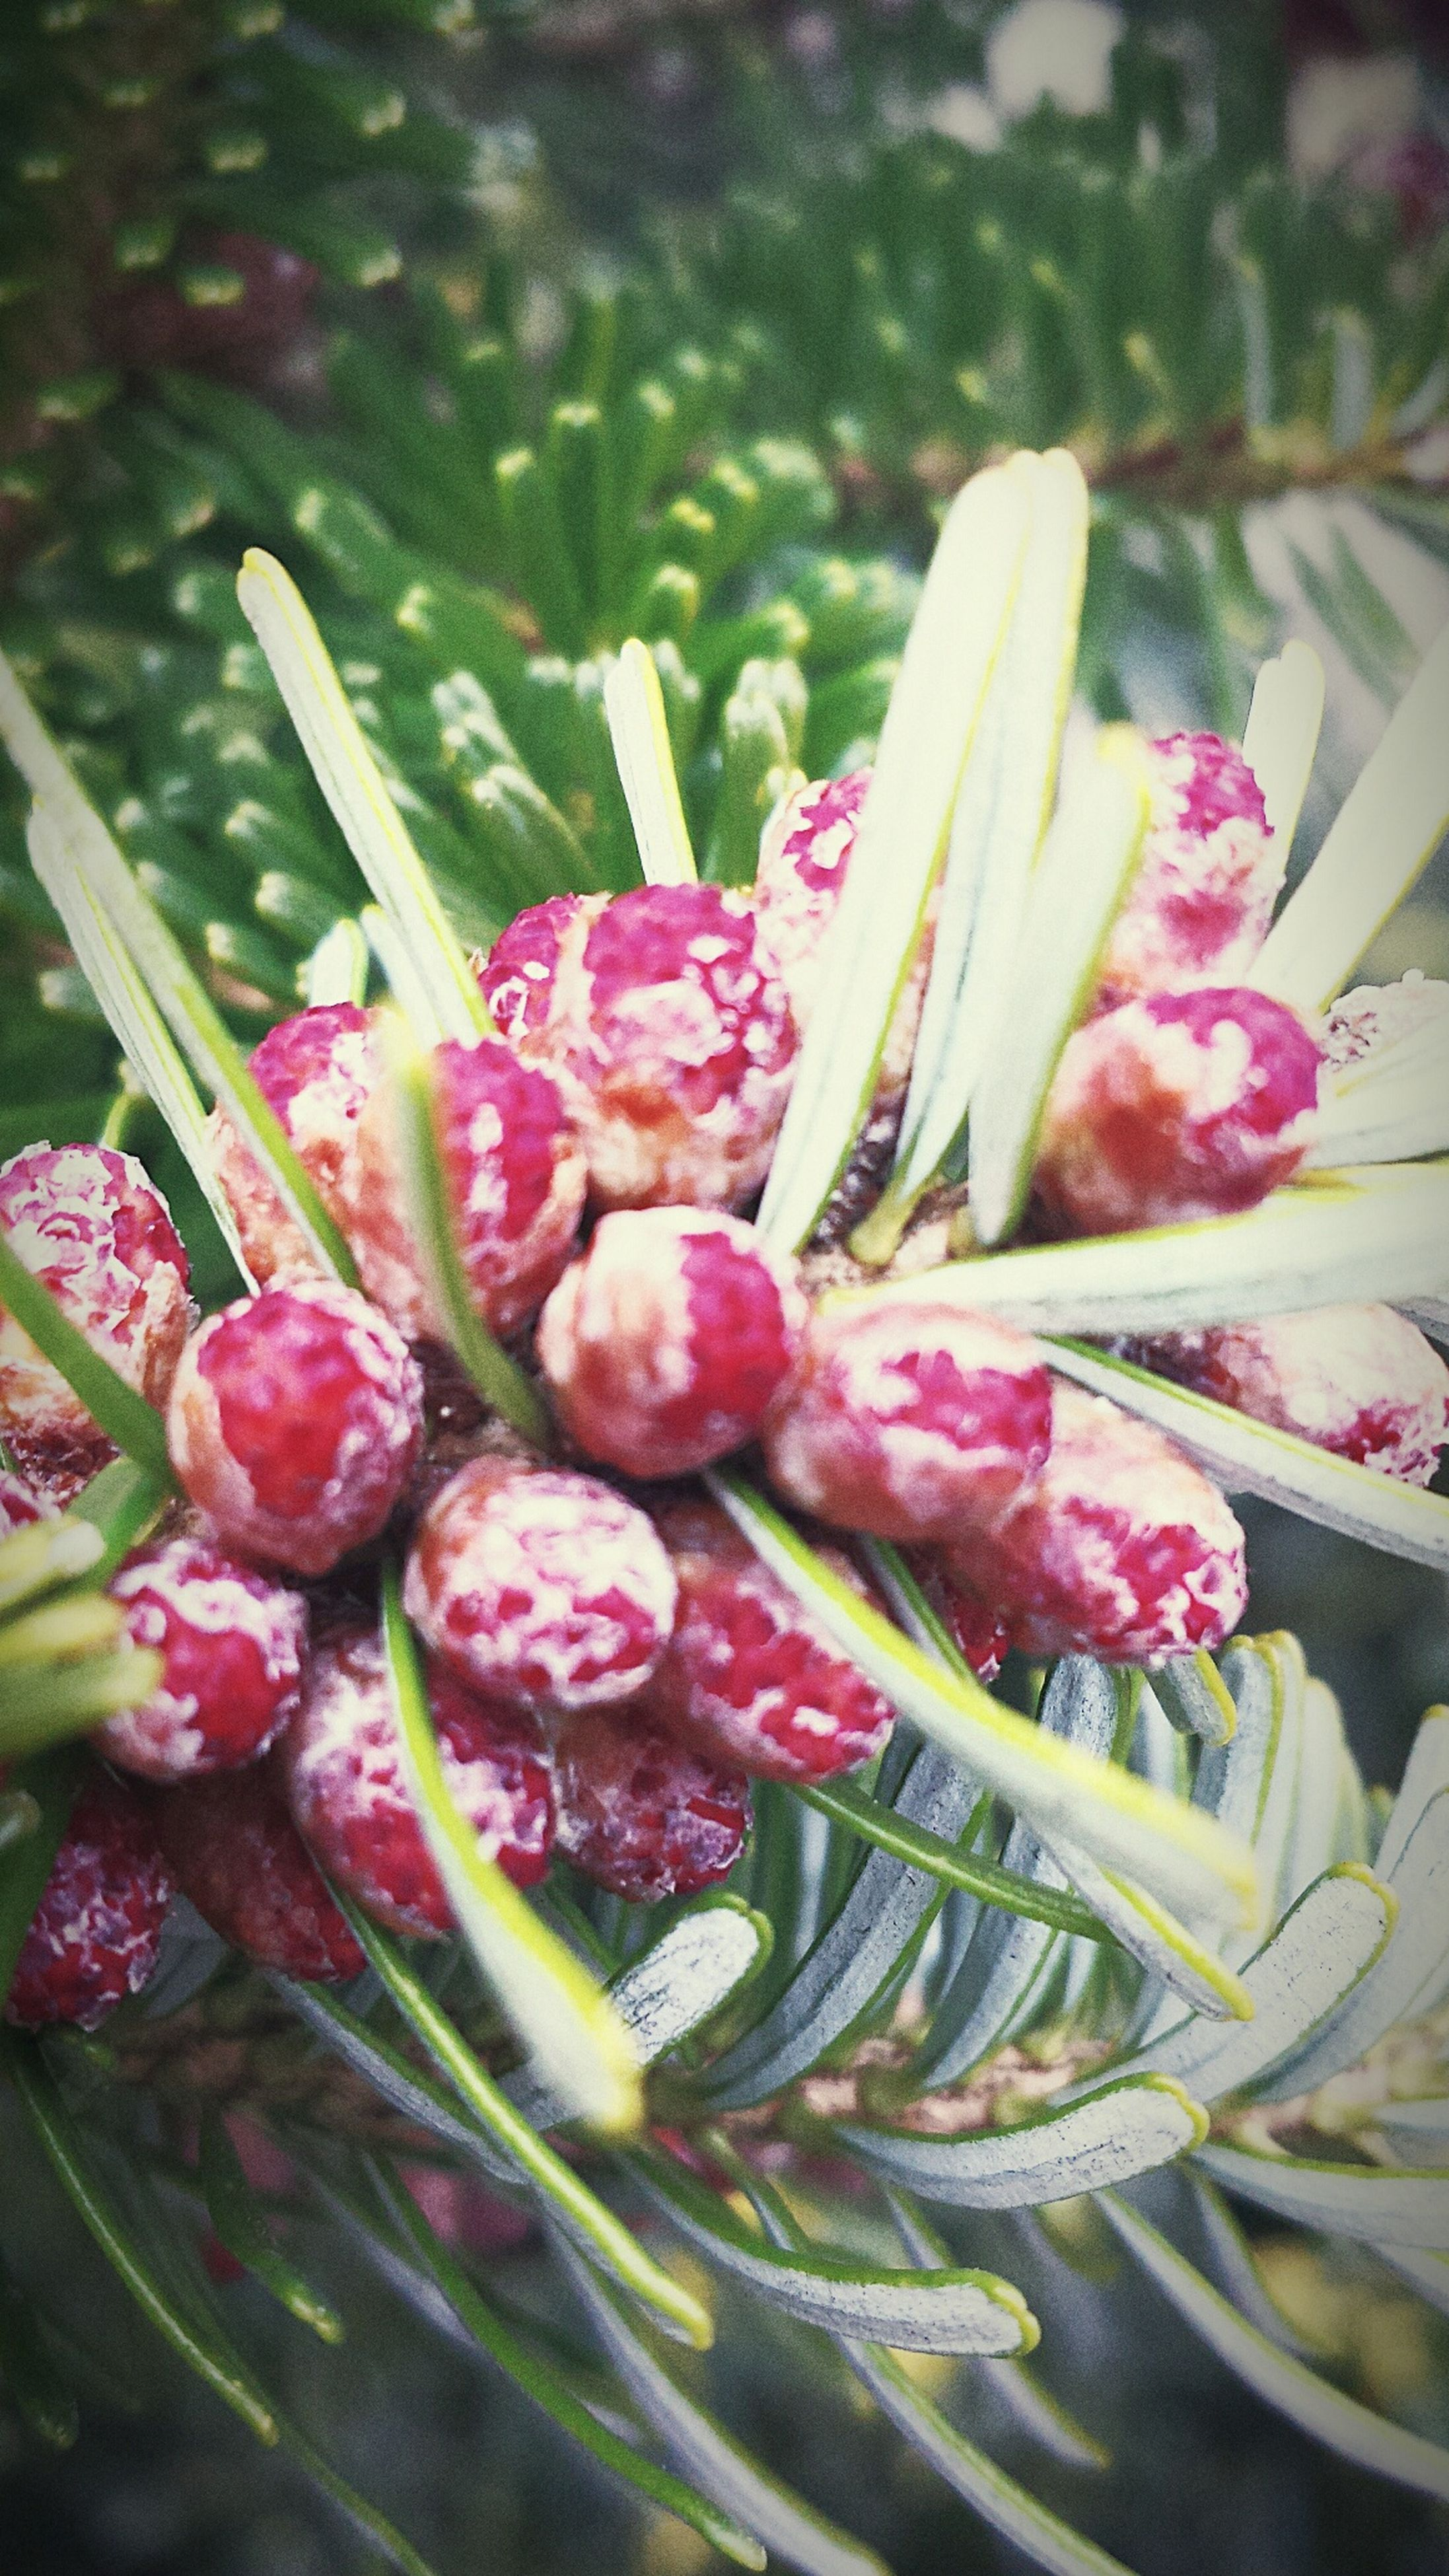 freshness, healthy eating, fruit, food, no people, plant, nature, close-up, outdoors, day